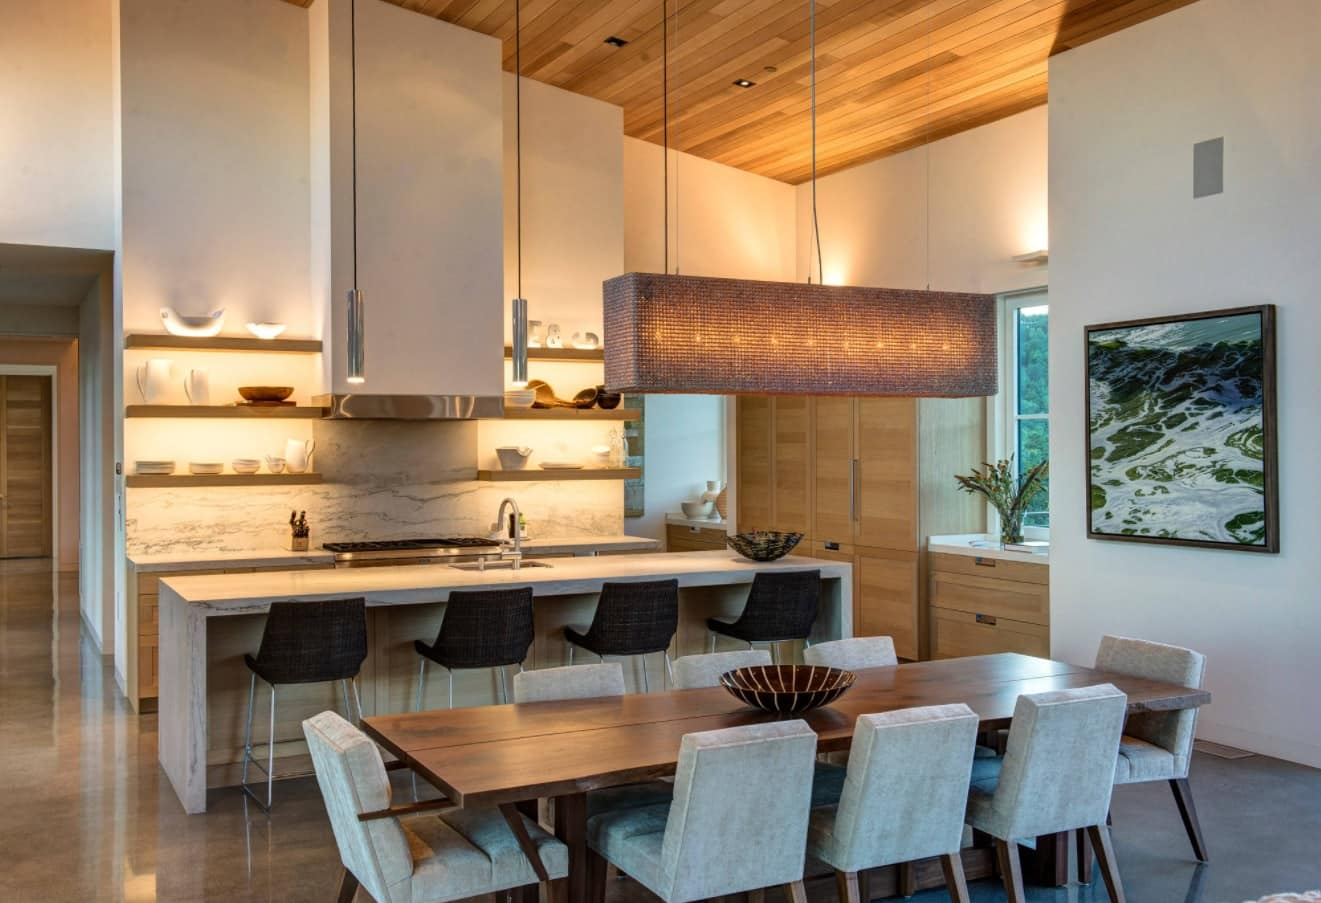 8 Beautiful Ways to Improve Your Home. Grandeur kitchen design in pastel colors, full of chairs and with open shelves backlight